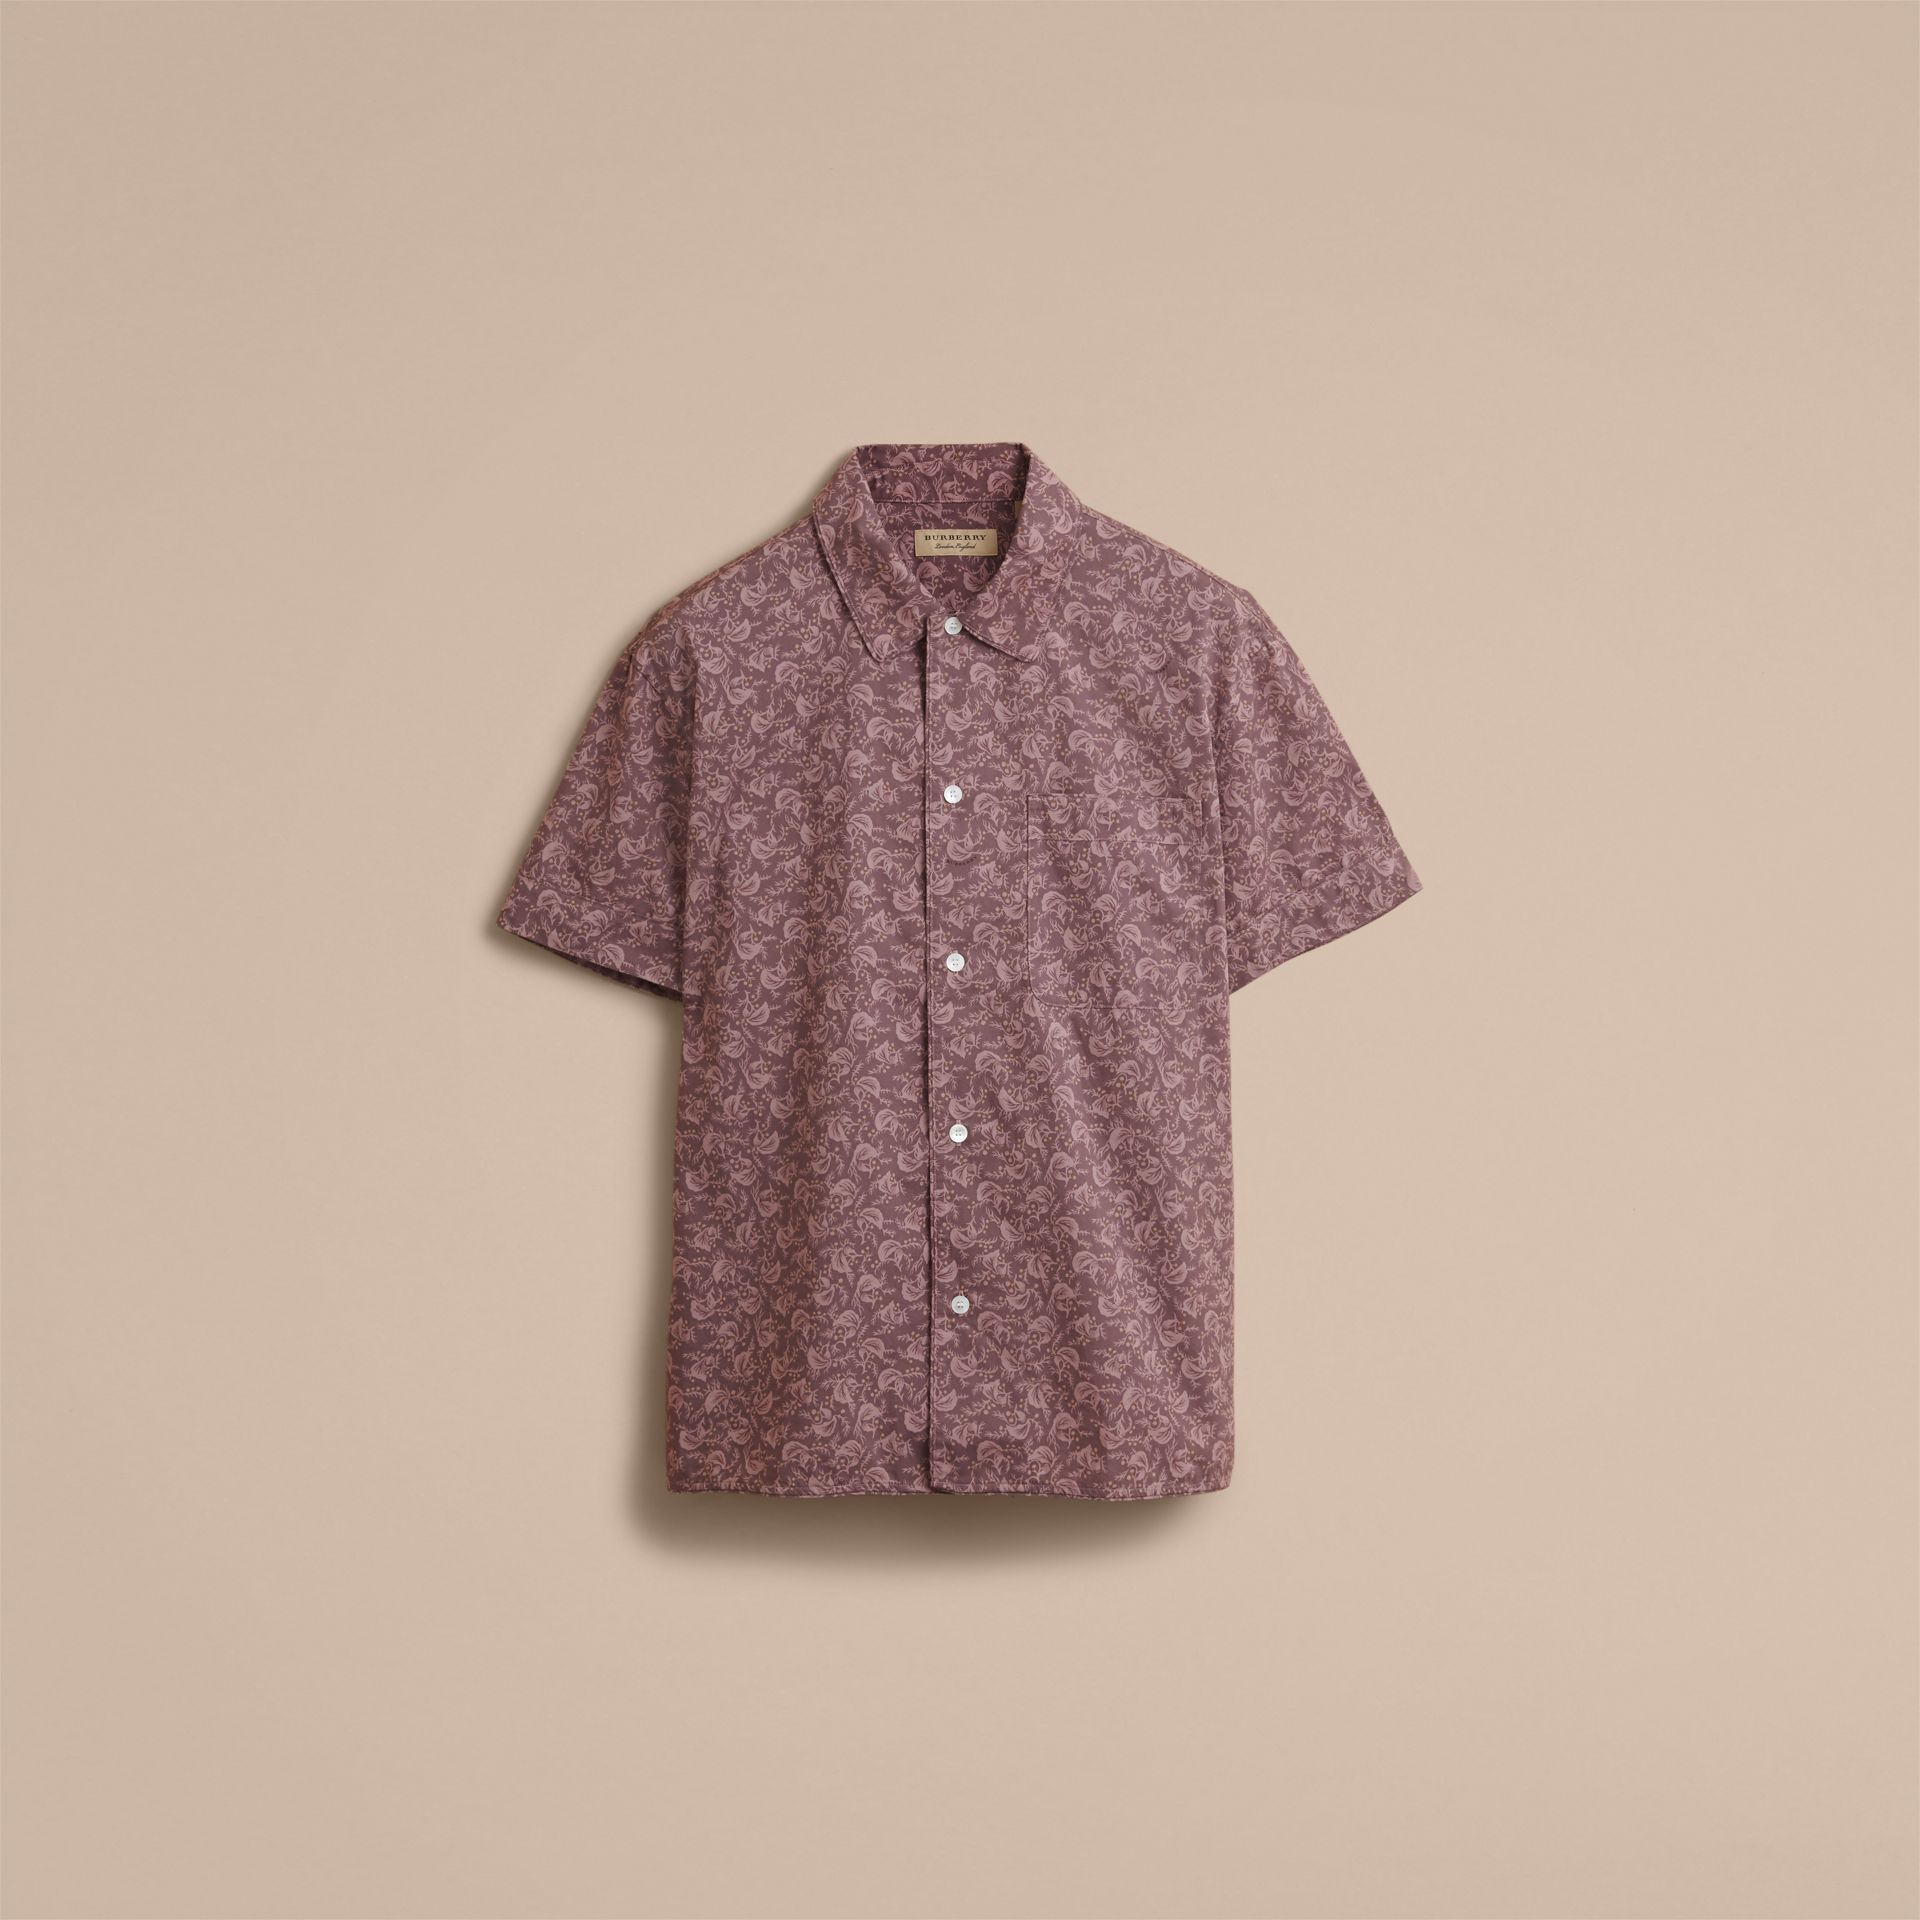 Short-sleeve Leaf Print Cotton Shirt in Mauve - Men | Burberry - gallery image 4